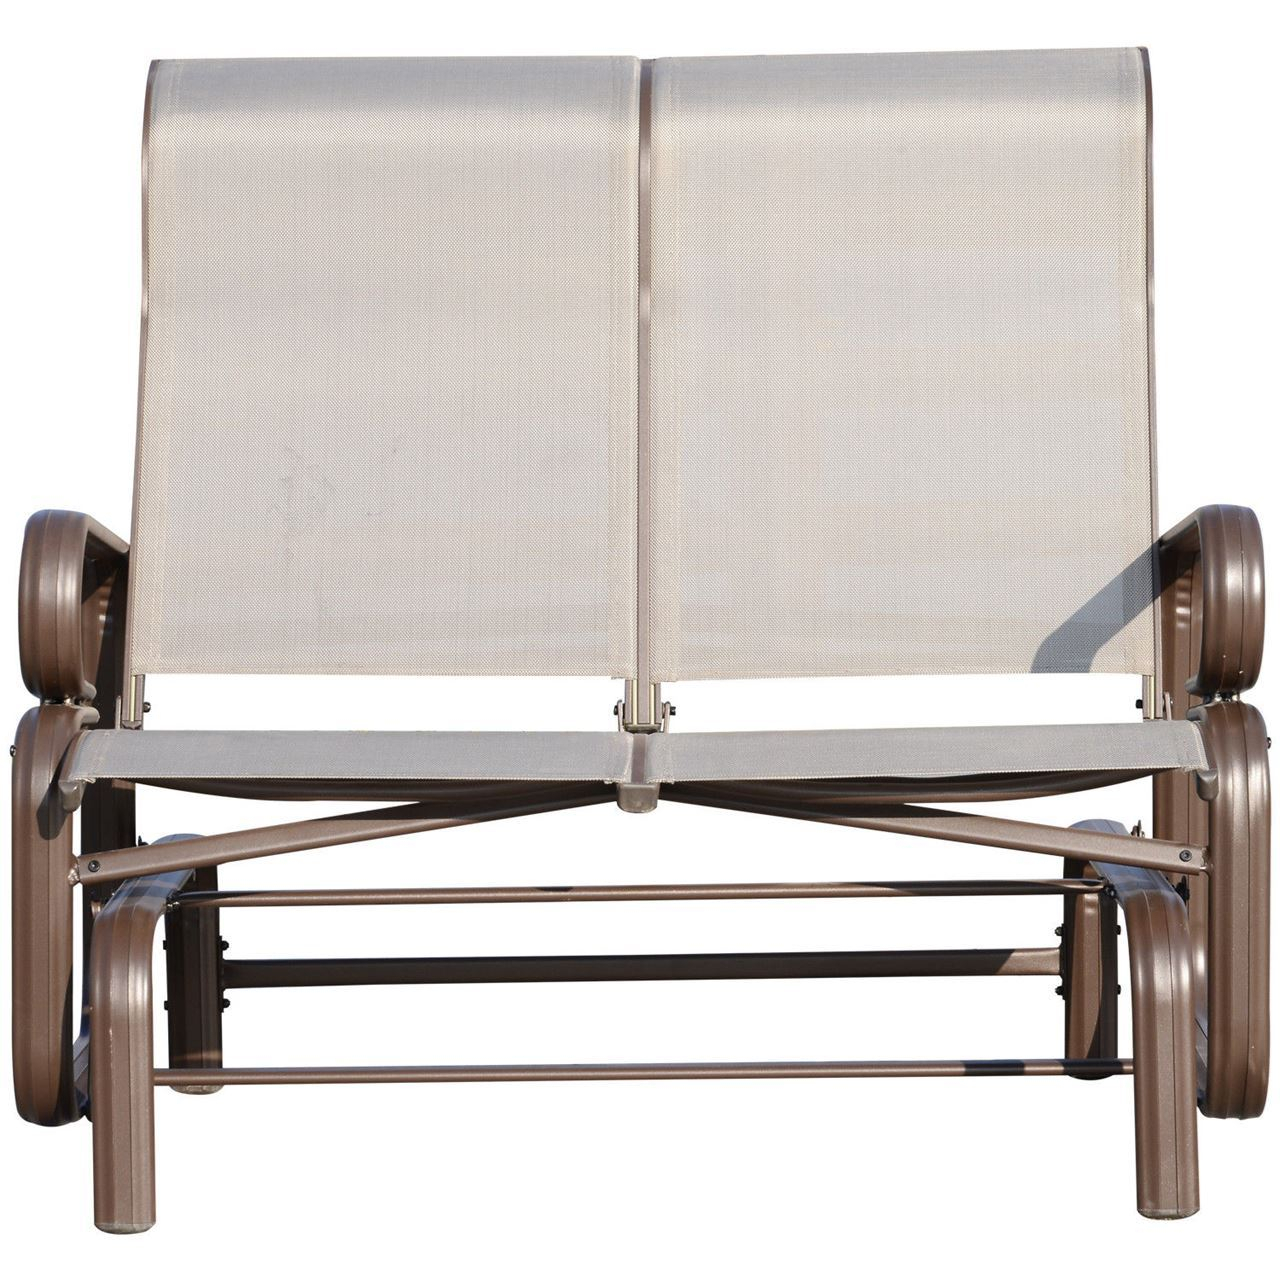 Outdoor Aluminum Double Glider Rocking Bench Swing Regarding Aluminum Outdoor Double Glider Benches (View 6 of 25)